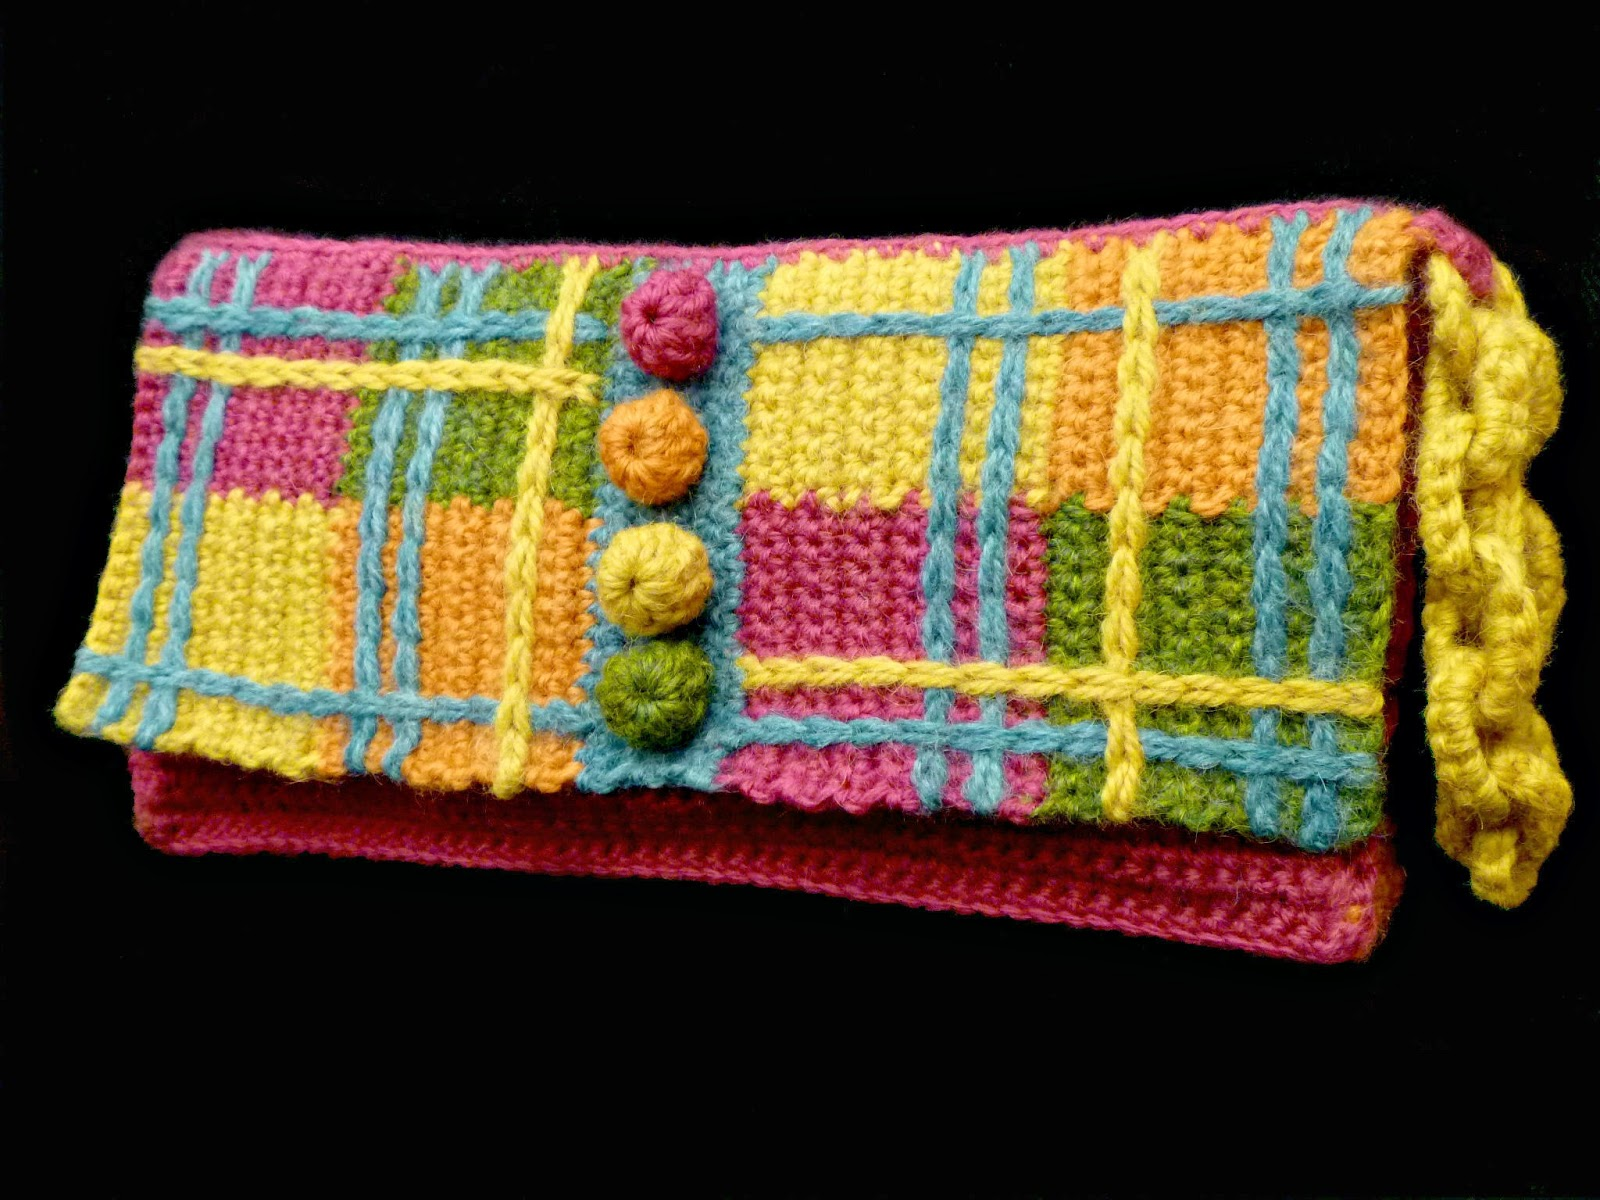 ... runway crochet book is the plaid wristlet purse this purse evolved so